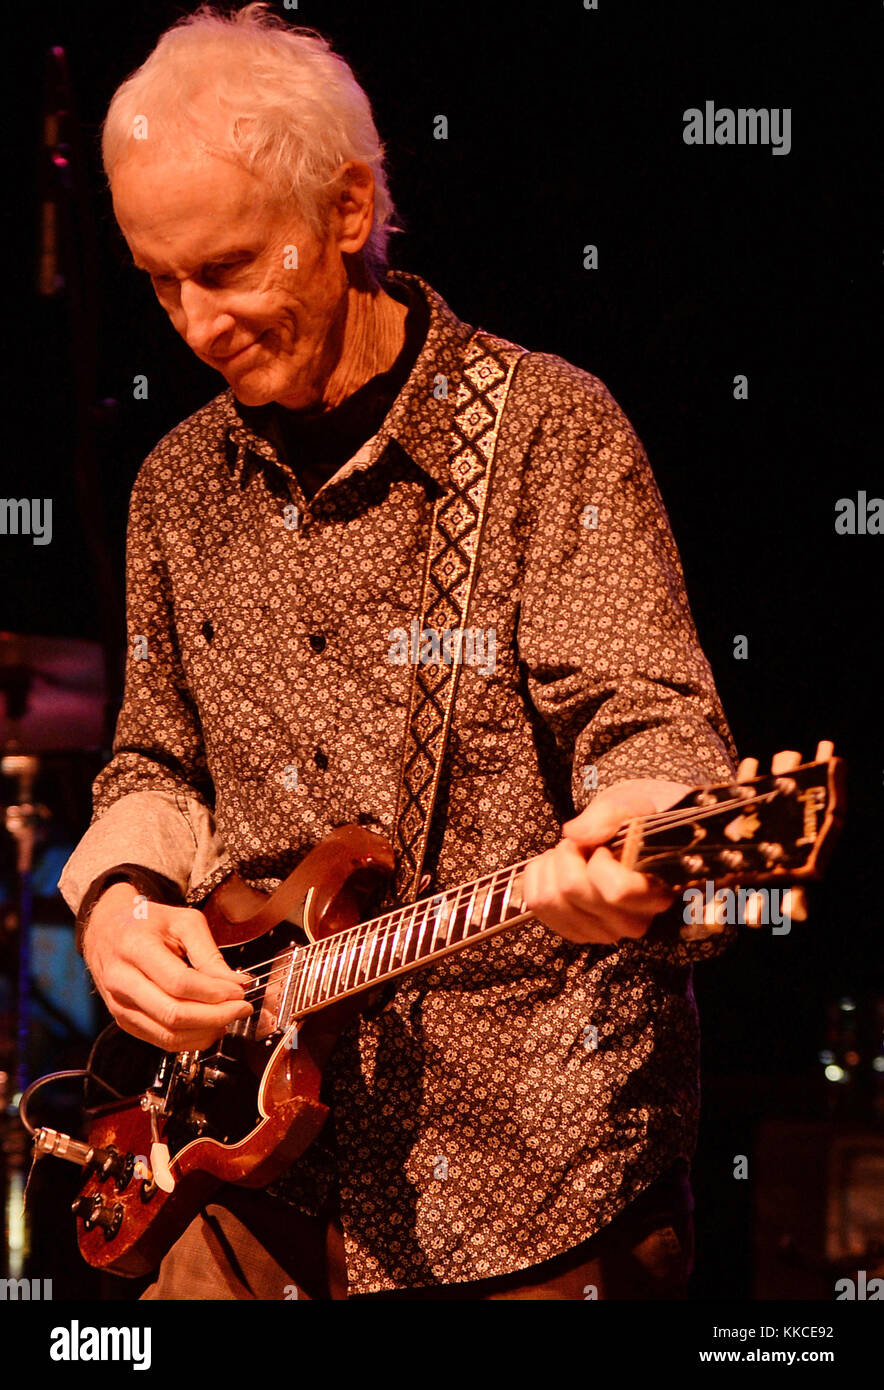 BOCA RATON - JANUARY 18 Robby Krieger of The Doors performs during the Sunshine Blues Festival at the Mizner Park Amphitheatre on January 18 ...  sc 1 st  Alamy & BOCA RATON - JANUARY 18: Robby Krieger of The Doors performs during ...